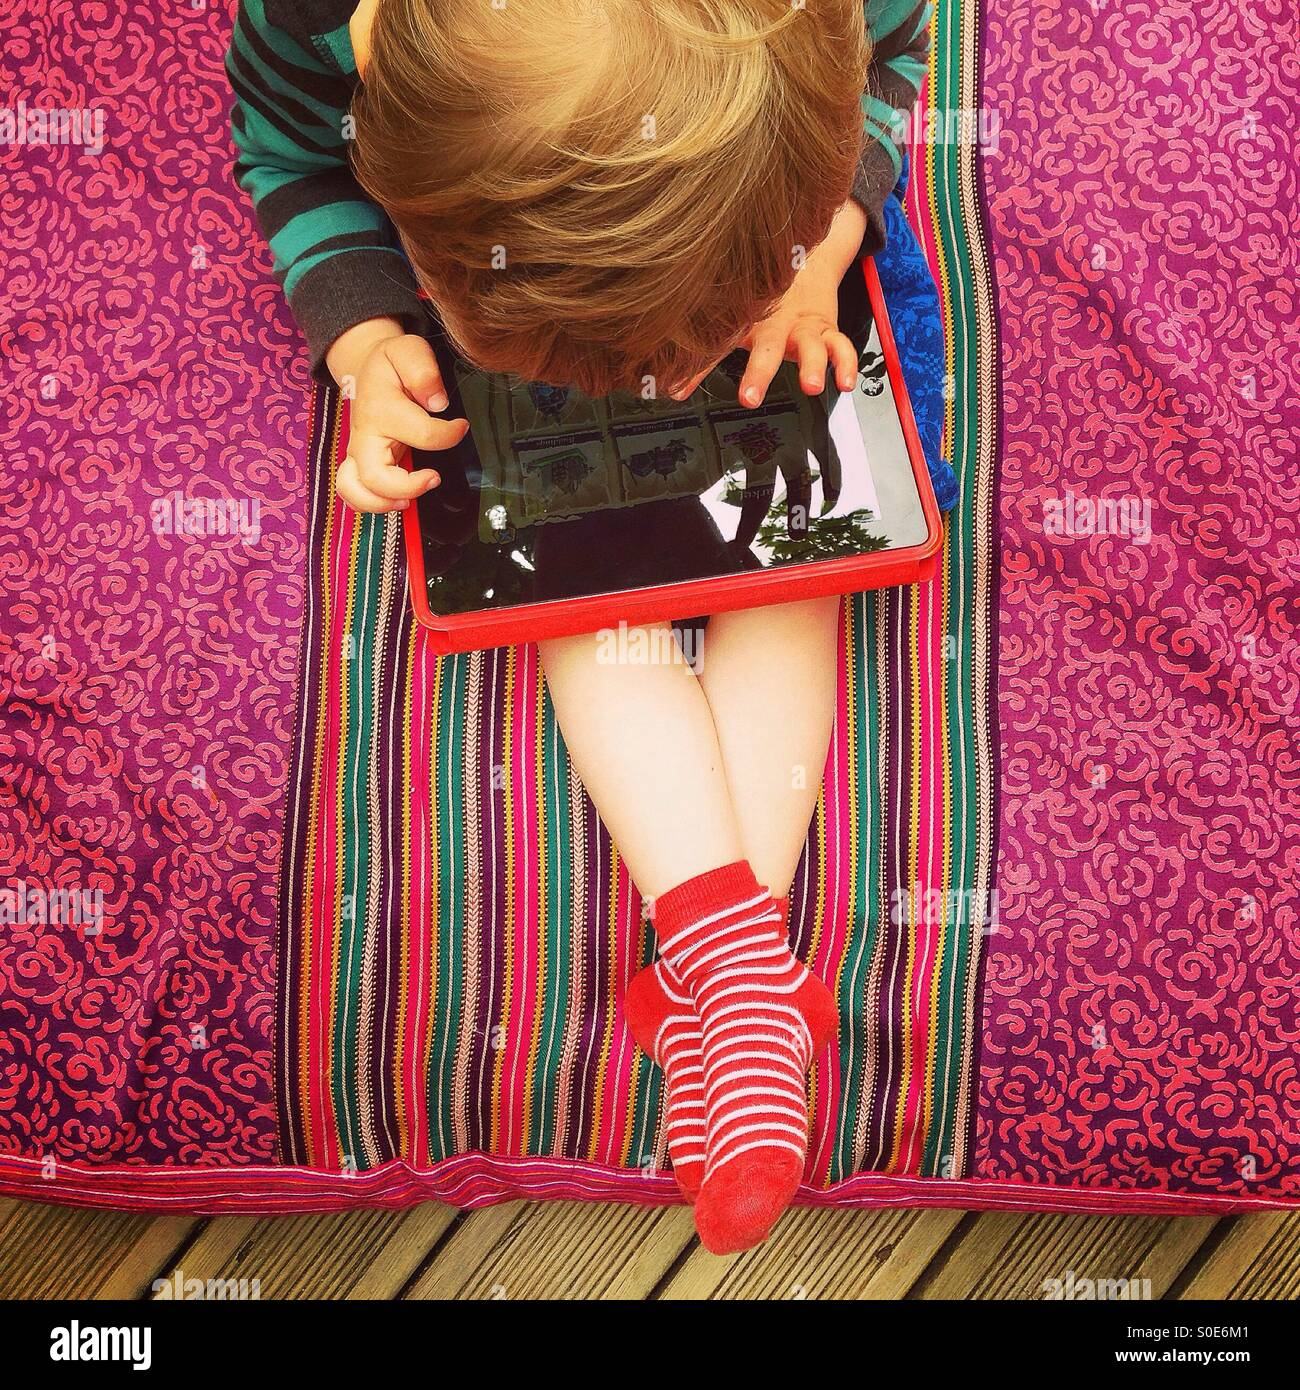 Young Boy playing on a Tablet - Stock Image